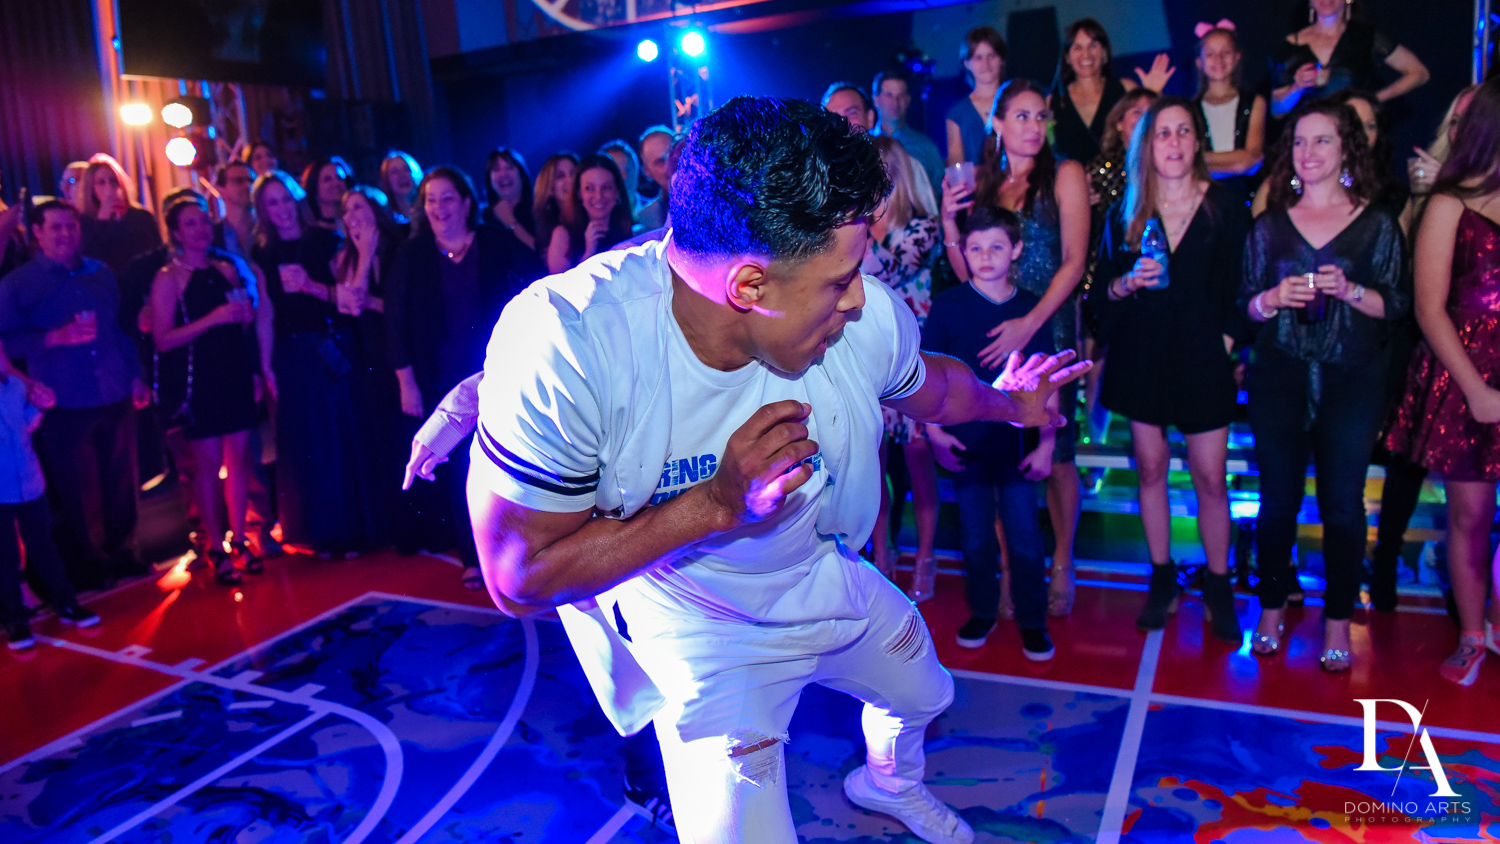 best dancers rock with u at Fun Basketball Theme Bar Mitzvah at The Fillmore Miami Beach by Domino Arts Photography